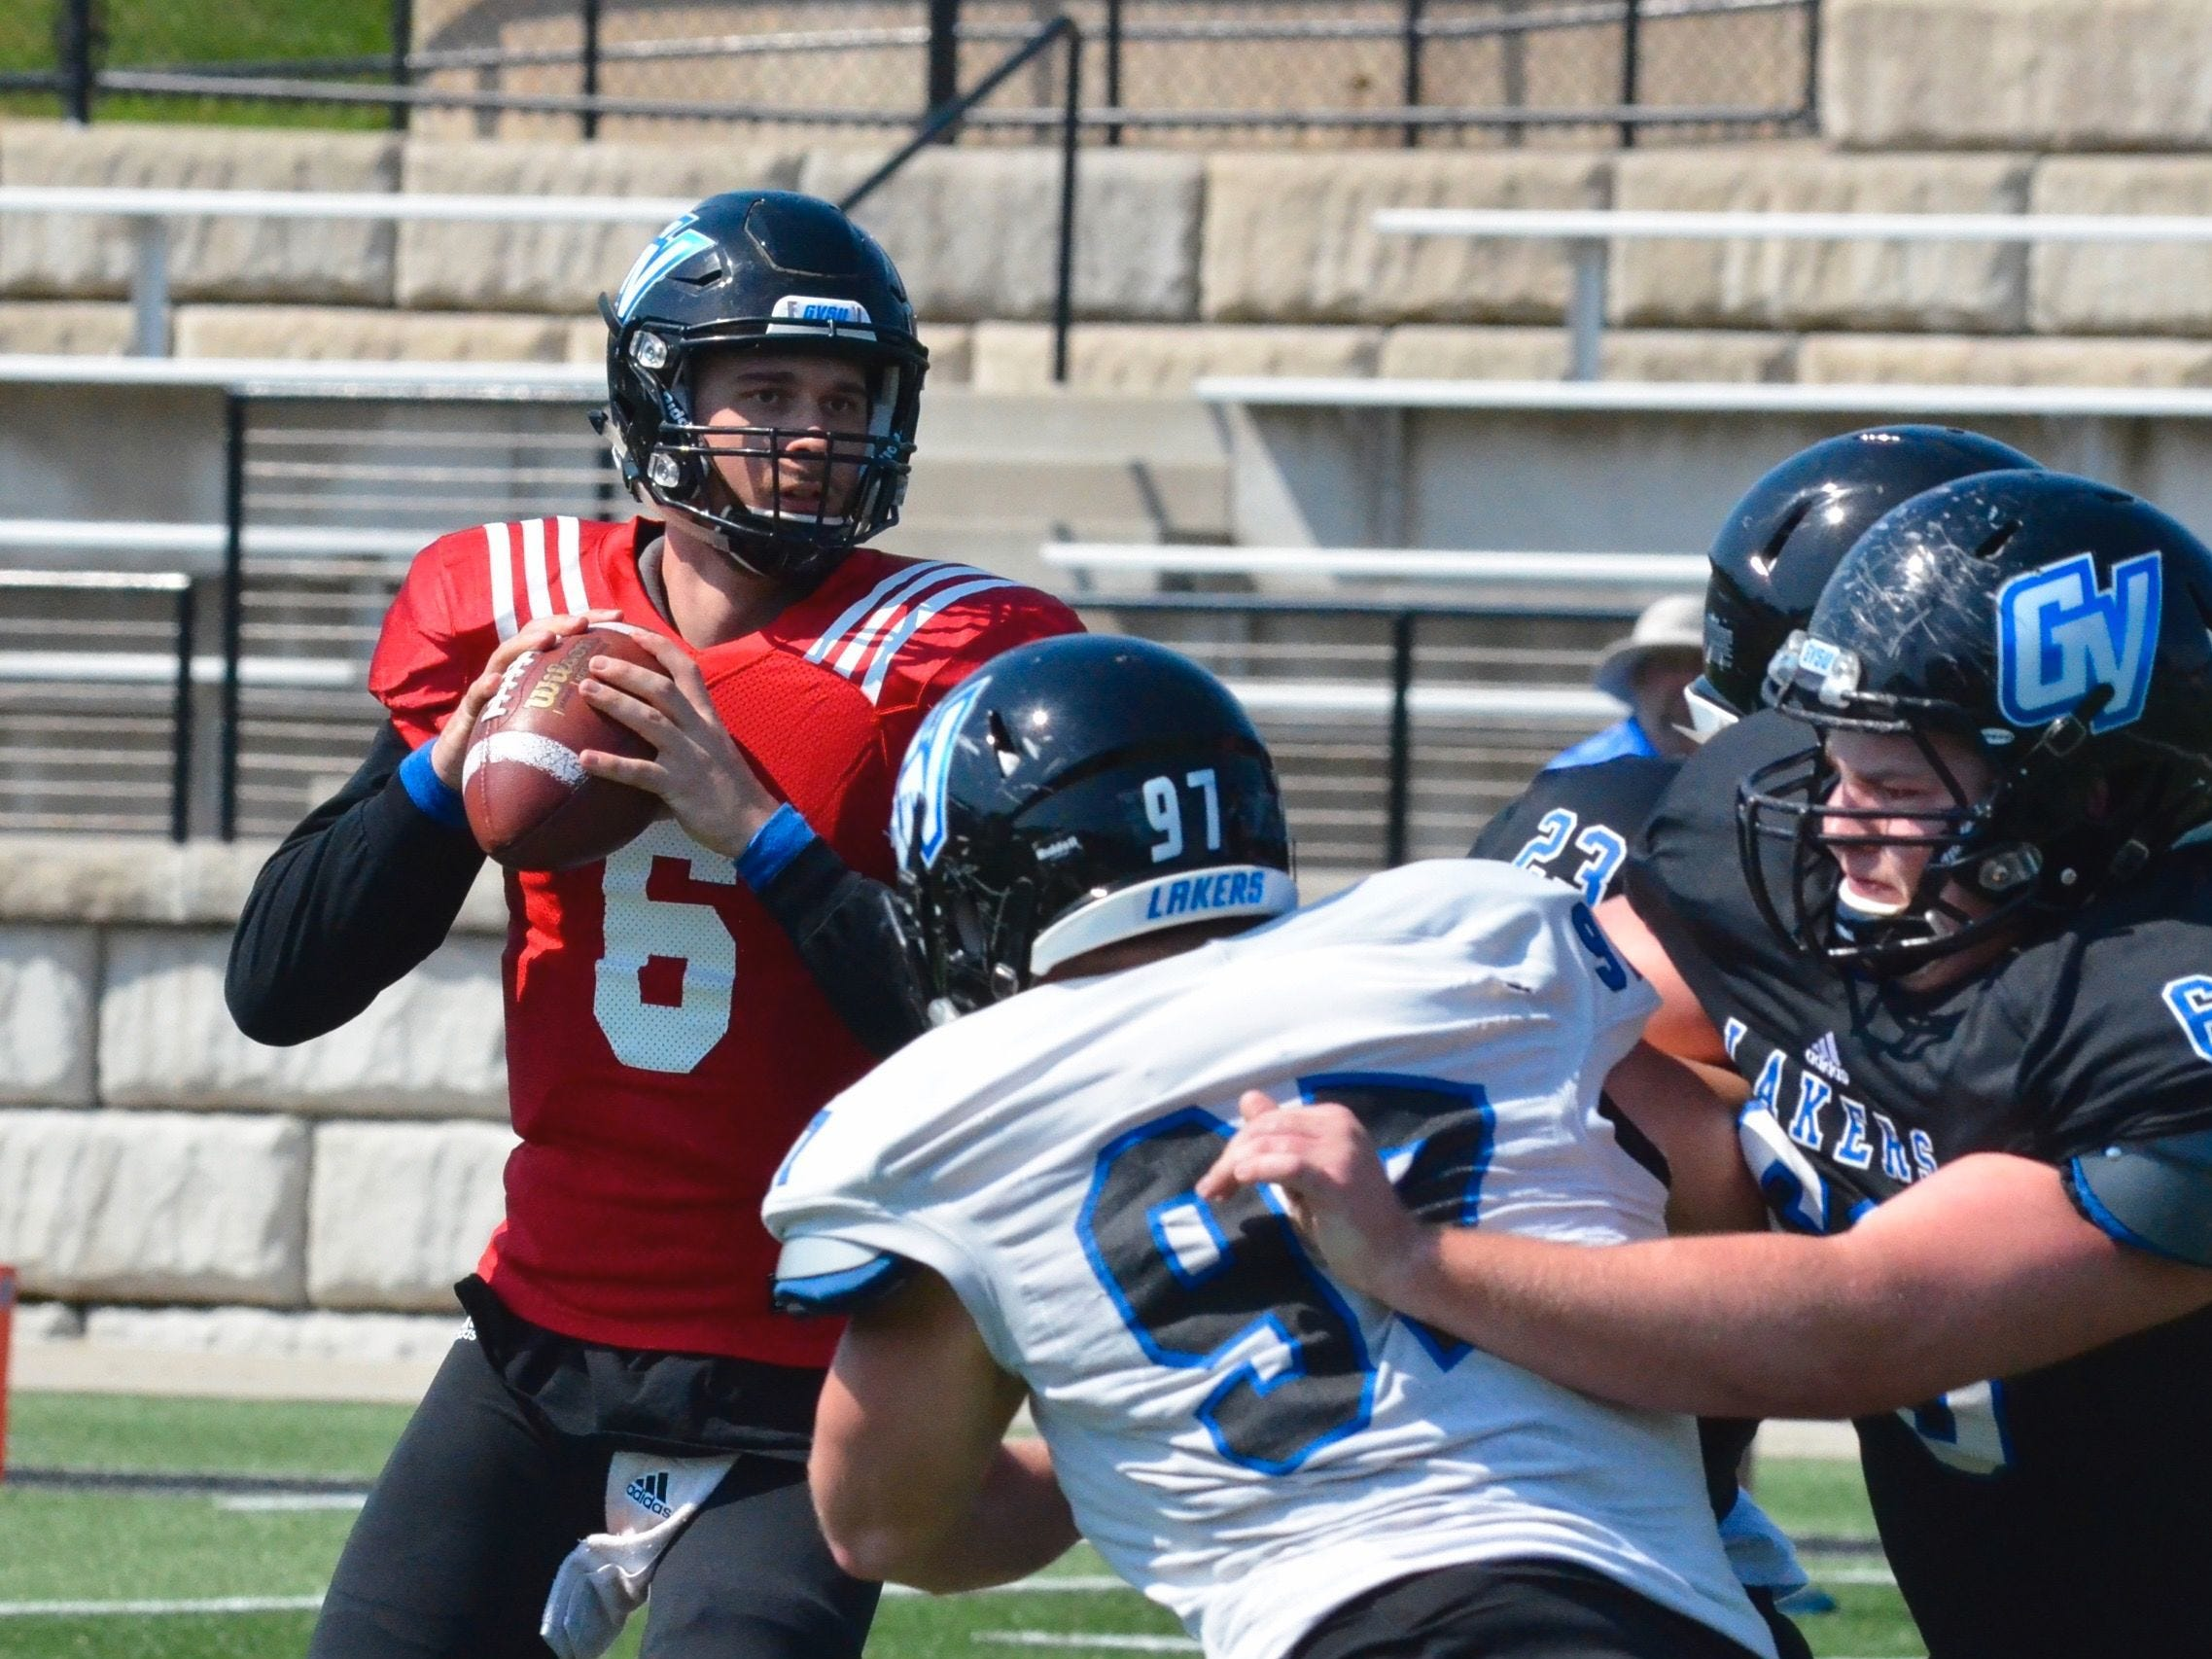 16. Grand Valley State at Saginaw Valley State. When: Oct. 27. Where: Saginaw.  The buzz: Grand Valley State crushed SVSU last year, 34-6, but in this in-state rivalry, anything can happen.